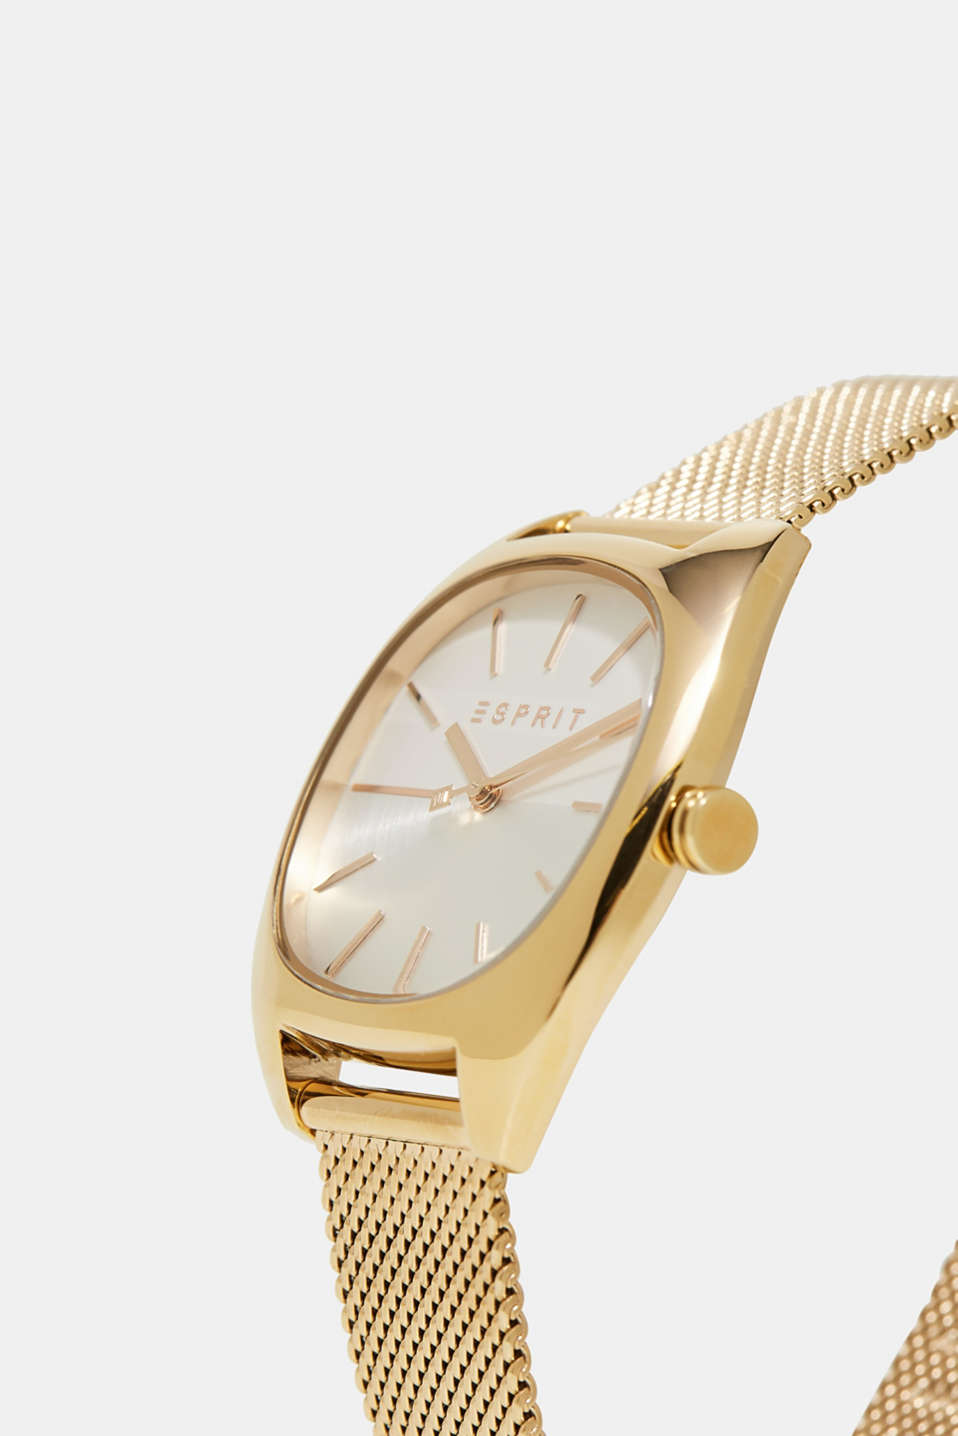 Gold-tone watch with a Milanese strap